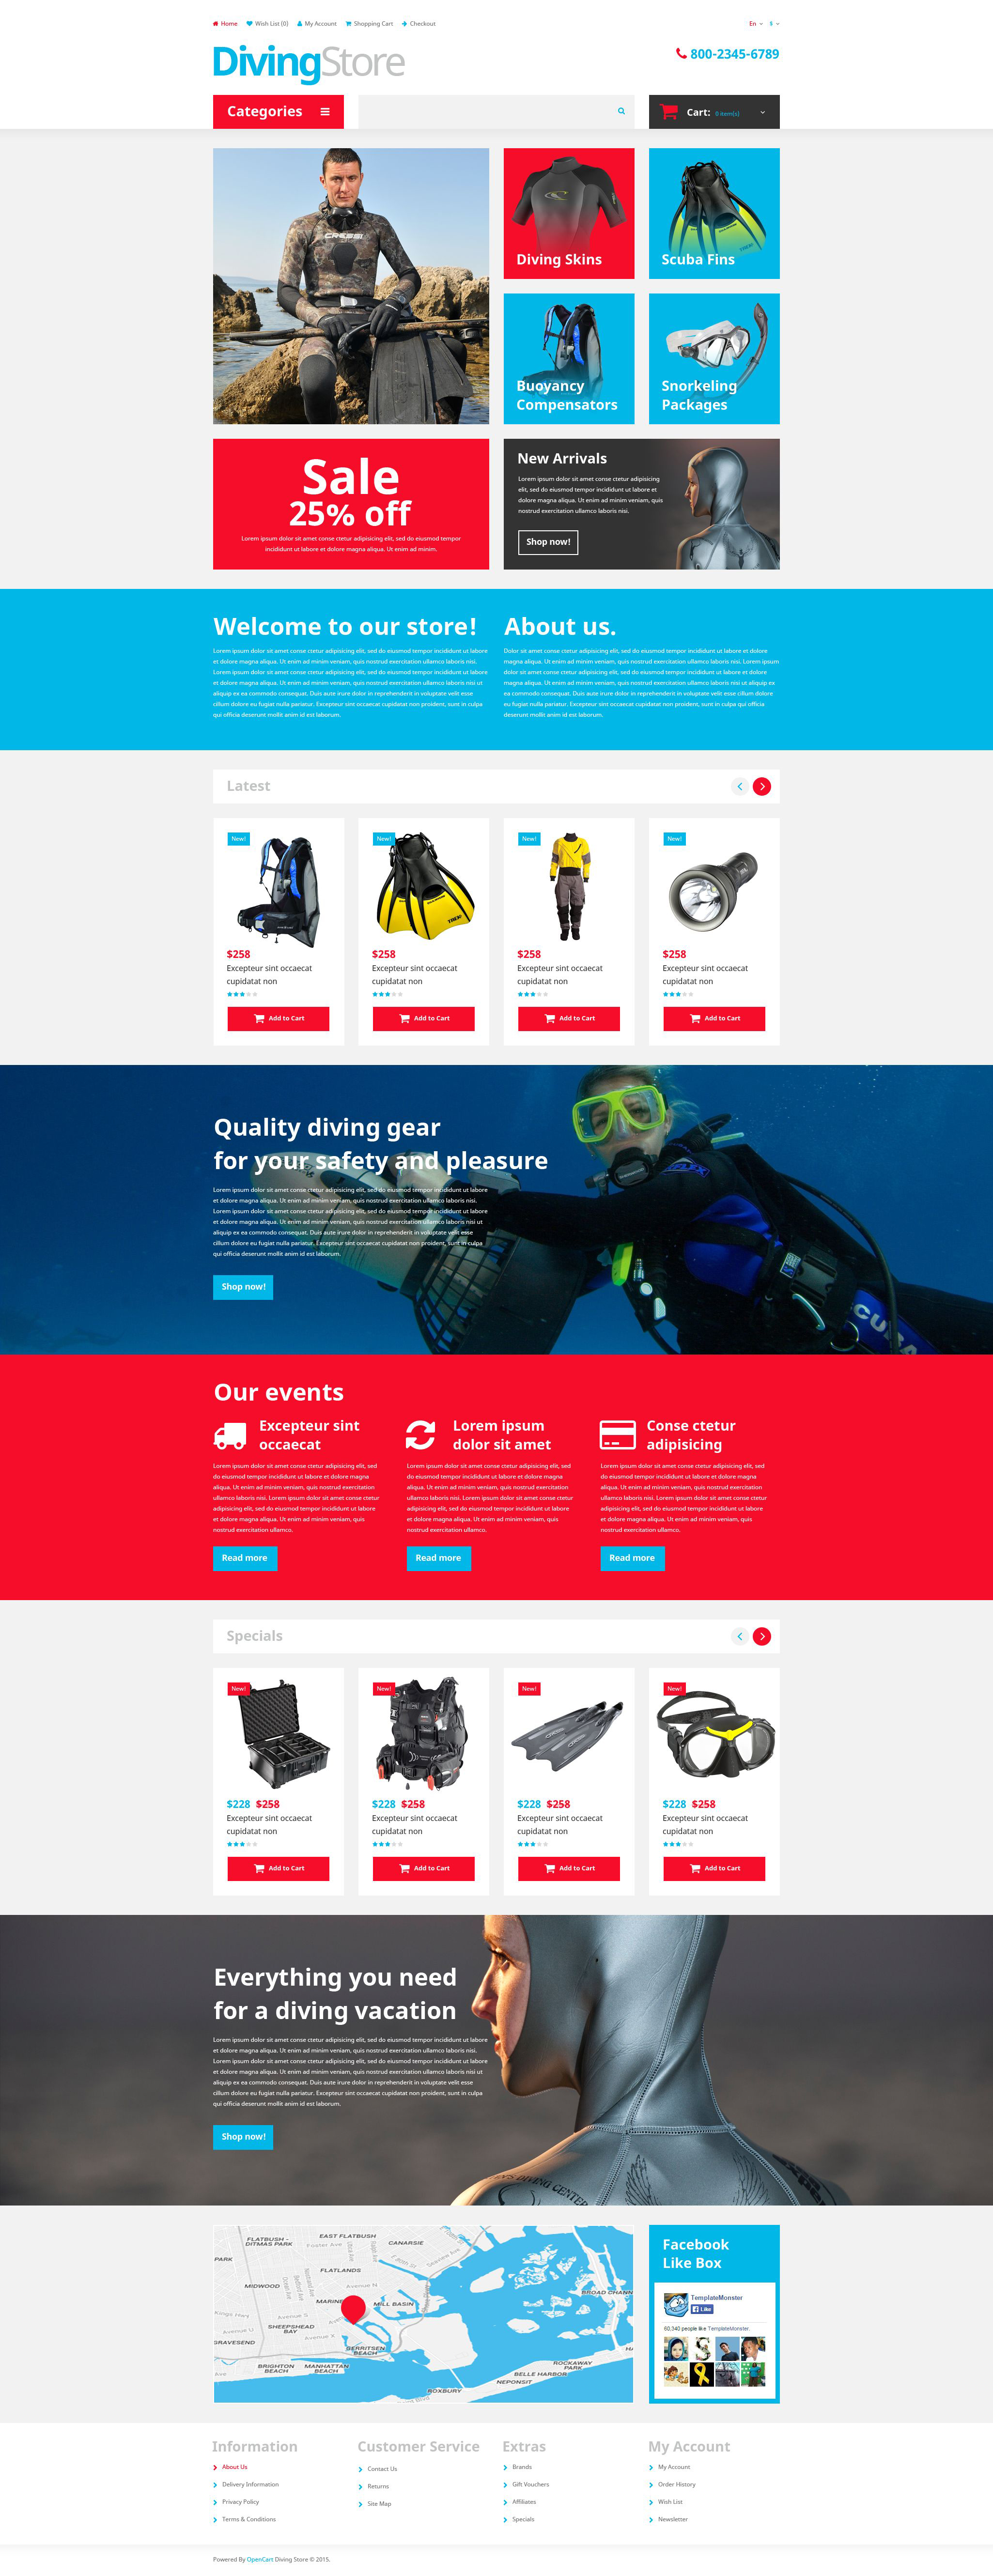 The Diving Shop OpenCart Design 53552, one of the best OpenCart templates of its kind (sport, most popular), also known as diving shop OpenCart template, sport OpenCart template, aqualung OpenCart template, submarine OpenCart template, oxygen OpenCart template, flippers OpenCart template, mask OpenCart template, reef OpenCart template, diving-suit OpenCart template, photography OpenCart template, camera OpenCart template, training OpenCart template, services OpenCart template, trainer OpenCart template, ring-buoy OpenCart template, life-guard OpenCart template, subscription OpenCart template, rules OpenCart template, travel OpenCart template, equipment and related with diving shop, sport, aqualung, submarine, oxygen, flippers, mask, reef, diving-suit, photography, camera, training, services, trainer, ring-buoy, life-guard, subscription, rules, travel, equipment, etc.